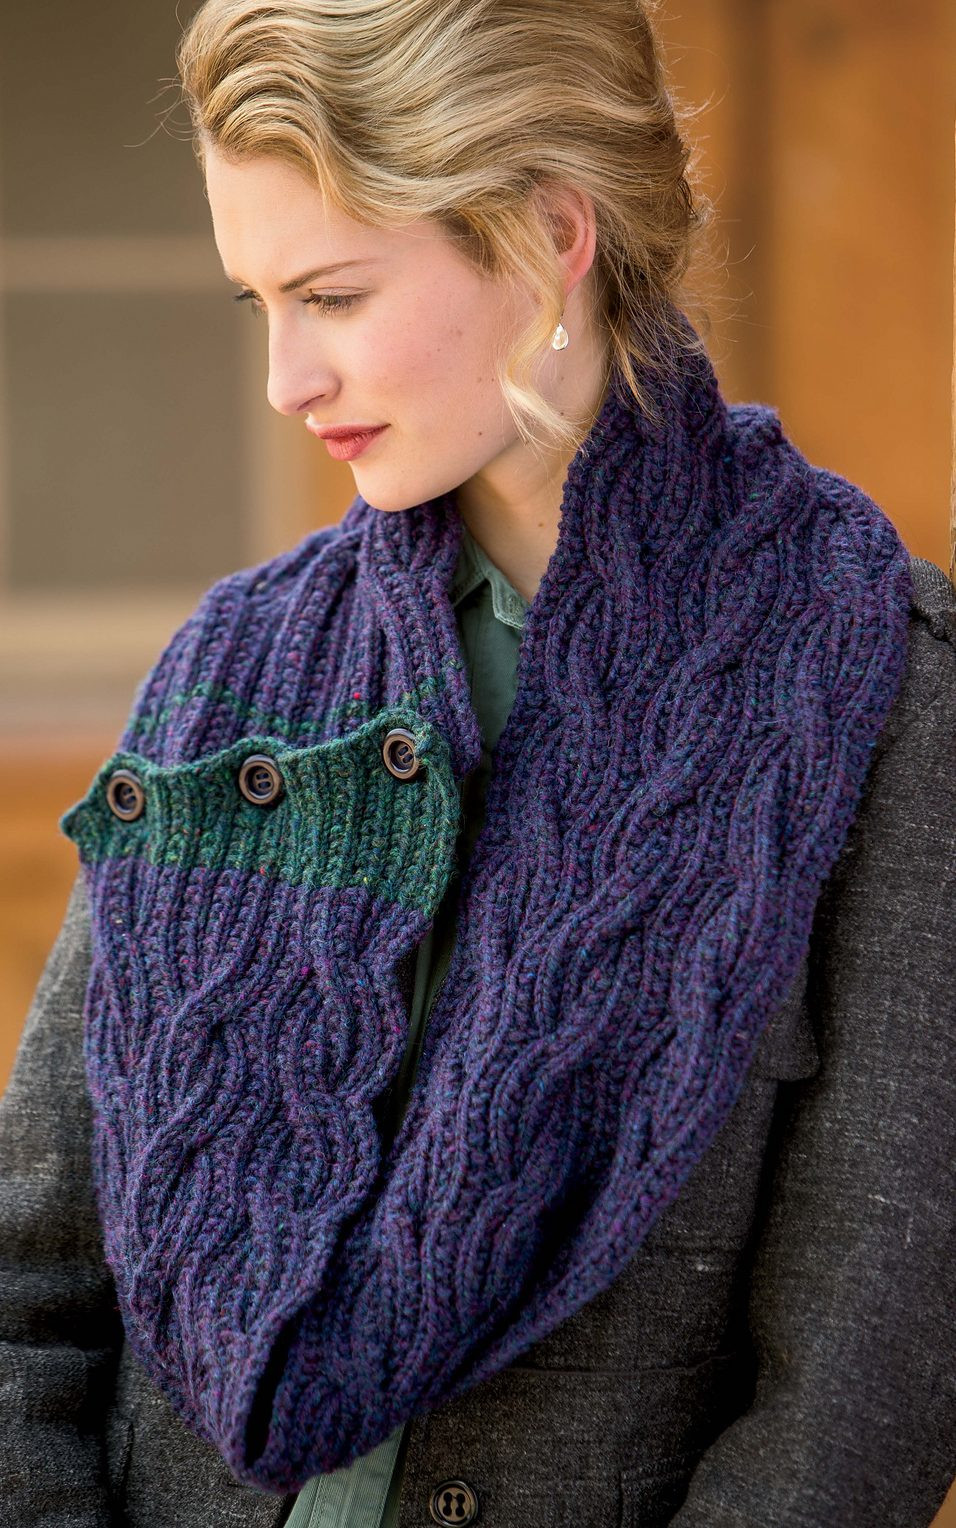 Easy Knitting Patterns Awesome Easy Scarf Knitting Patterns Of Superb 44 Ideas Easy Knitting Patterns